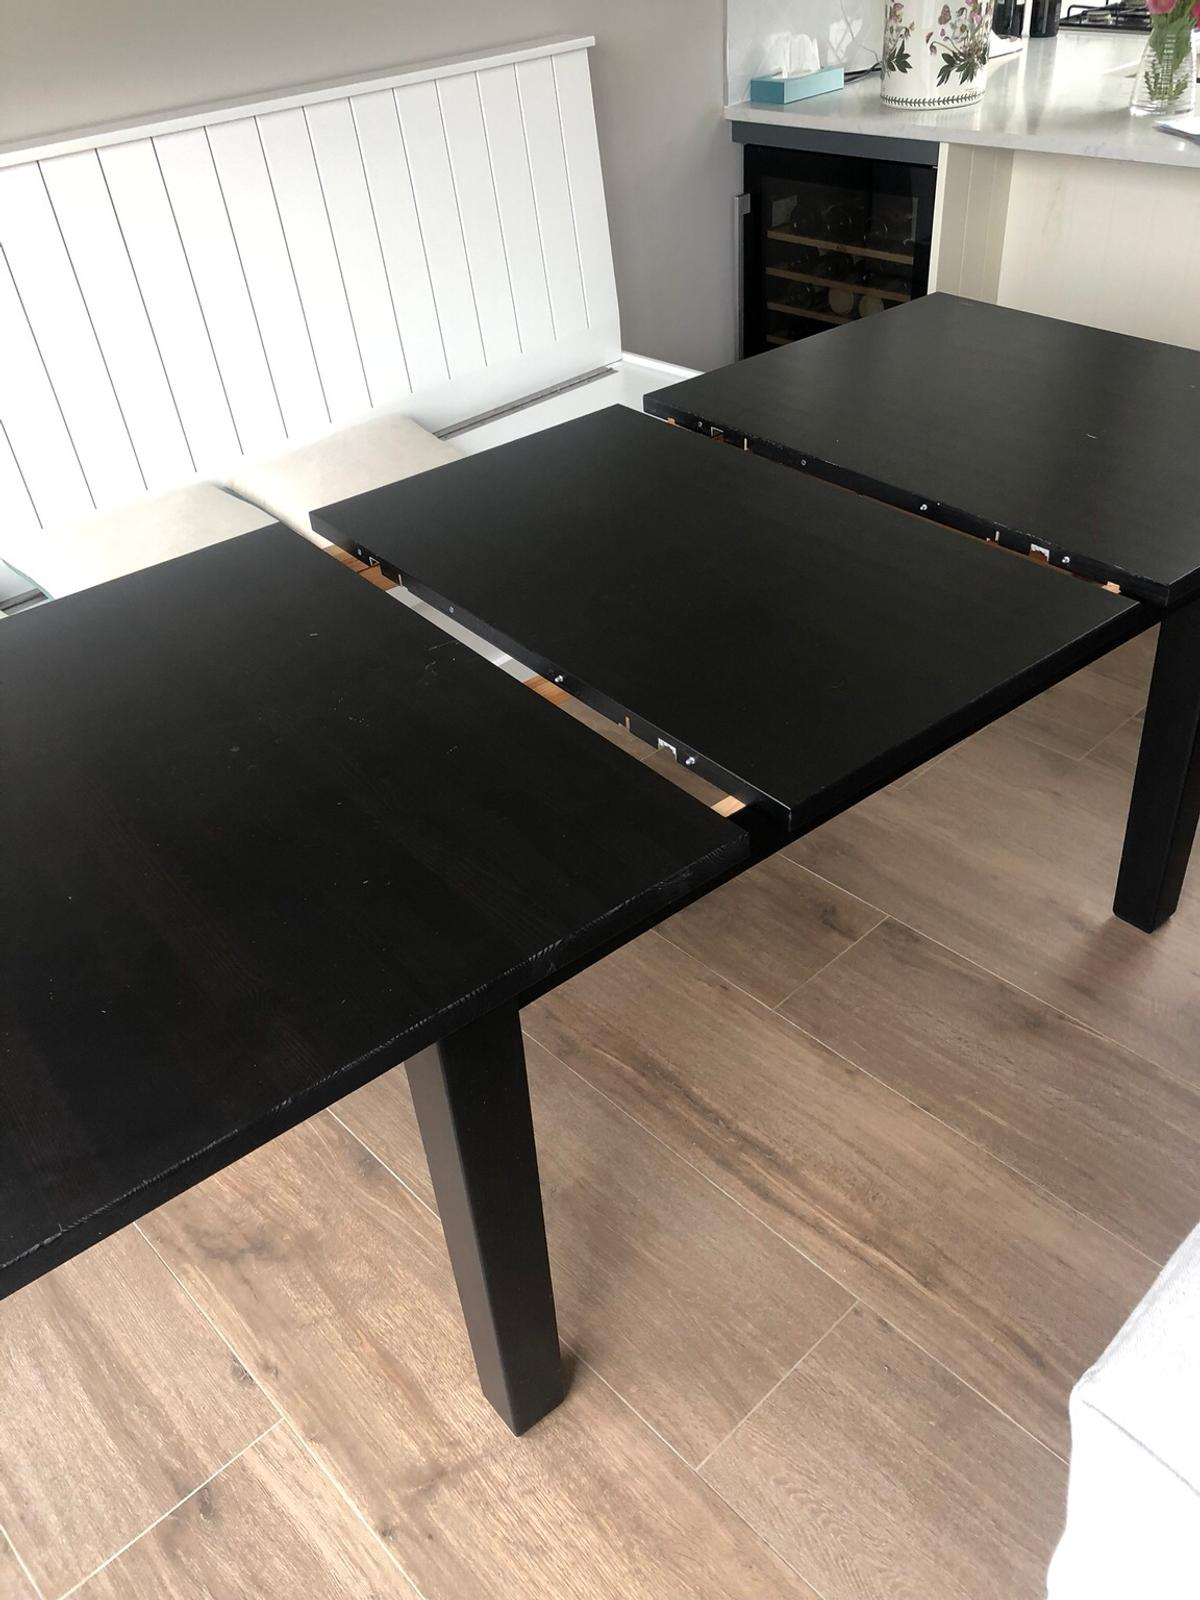 IKEA LANEBERG Extendable Table in SW6